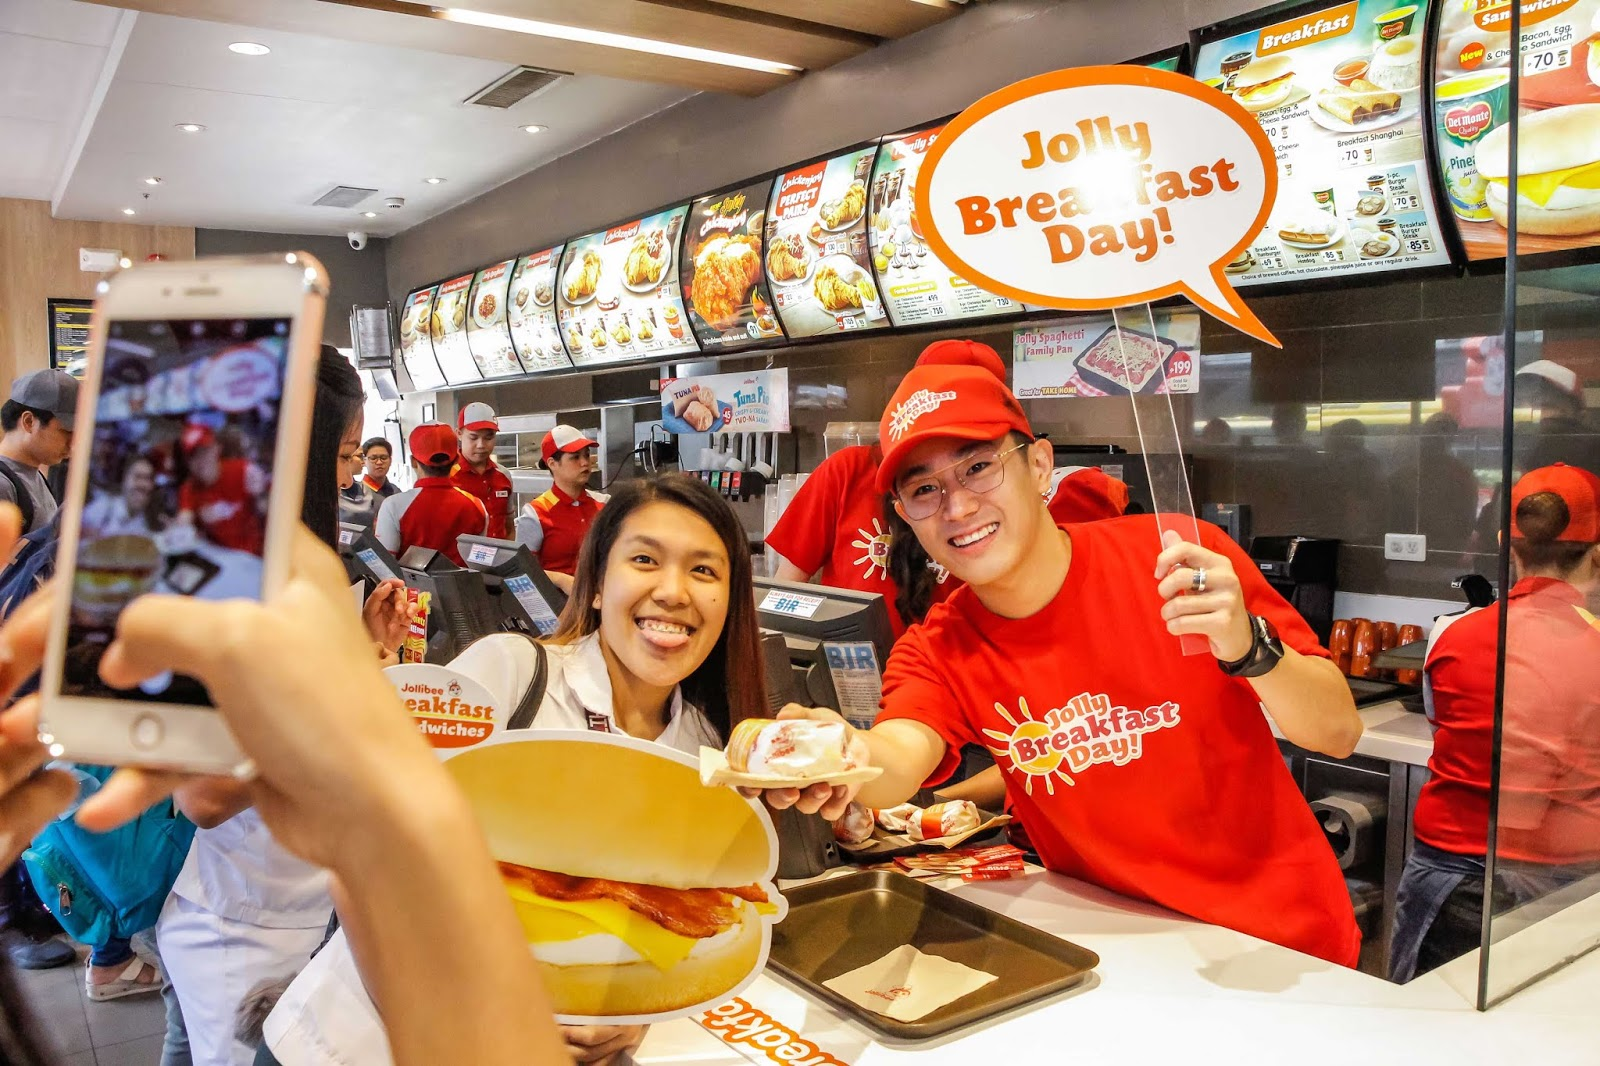 Jollibee celebrates Jolly Breakfast Day with free Bacon, Egg, & Cheese Sandwiches